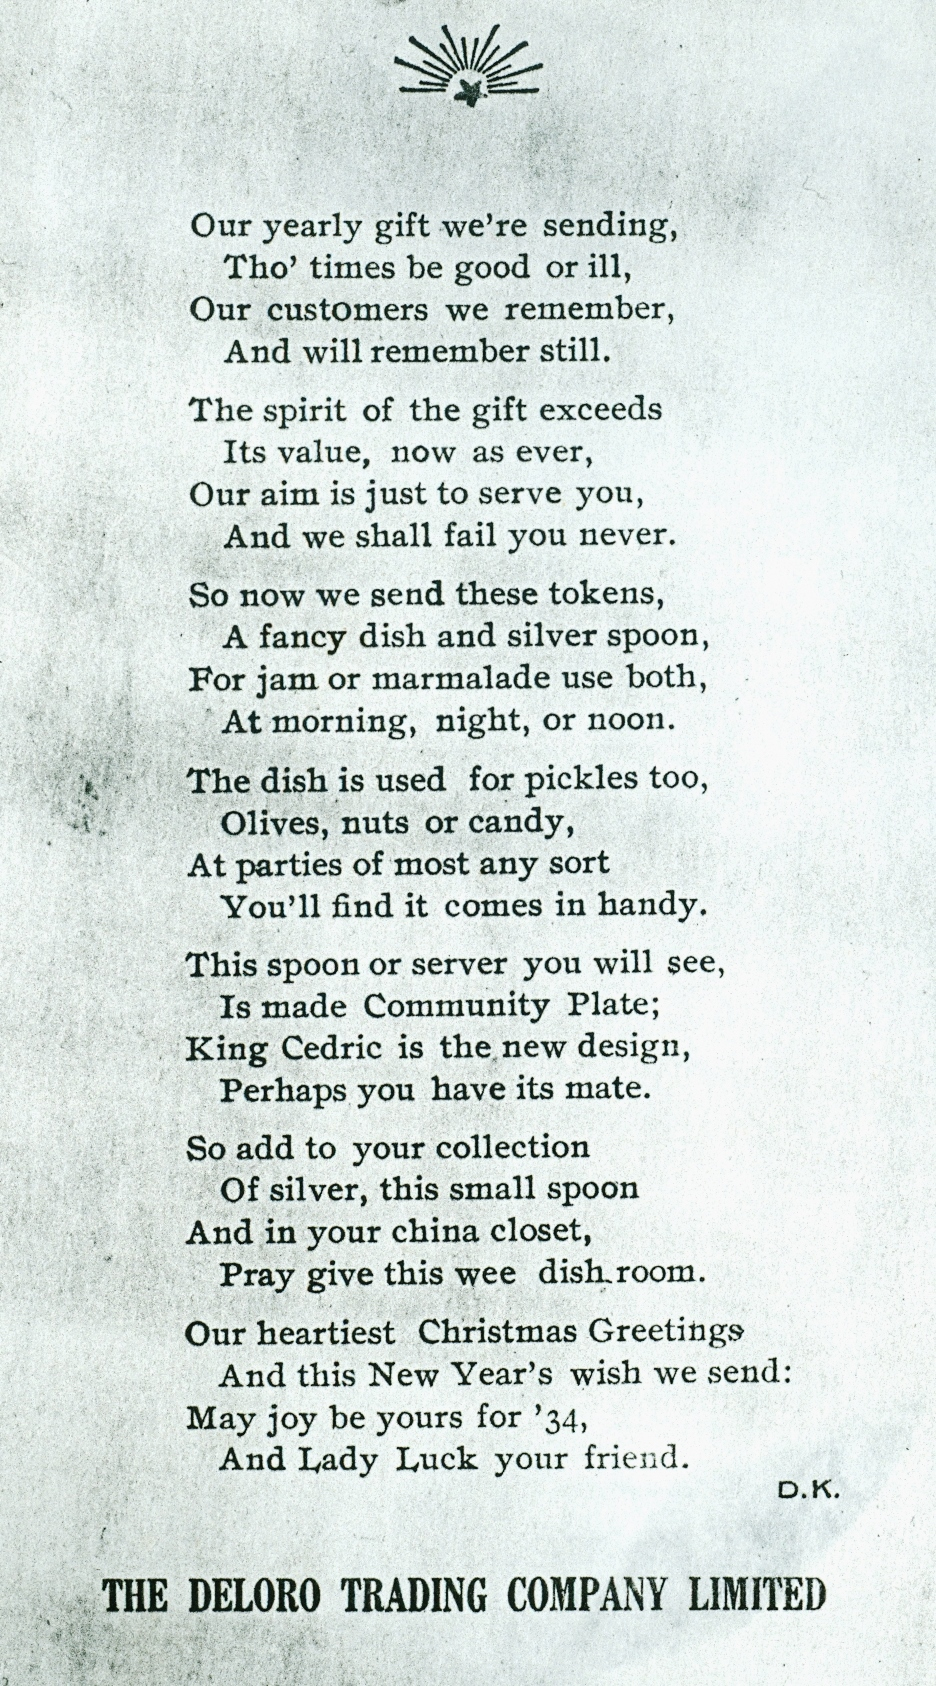 Deloro Trading Co. Poem.jpg